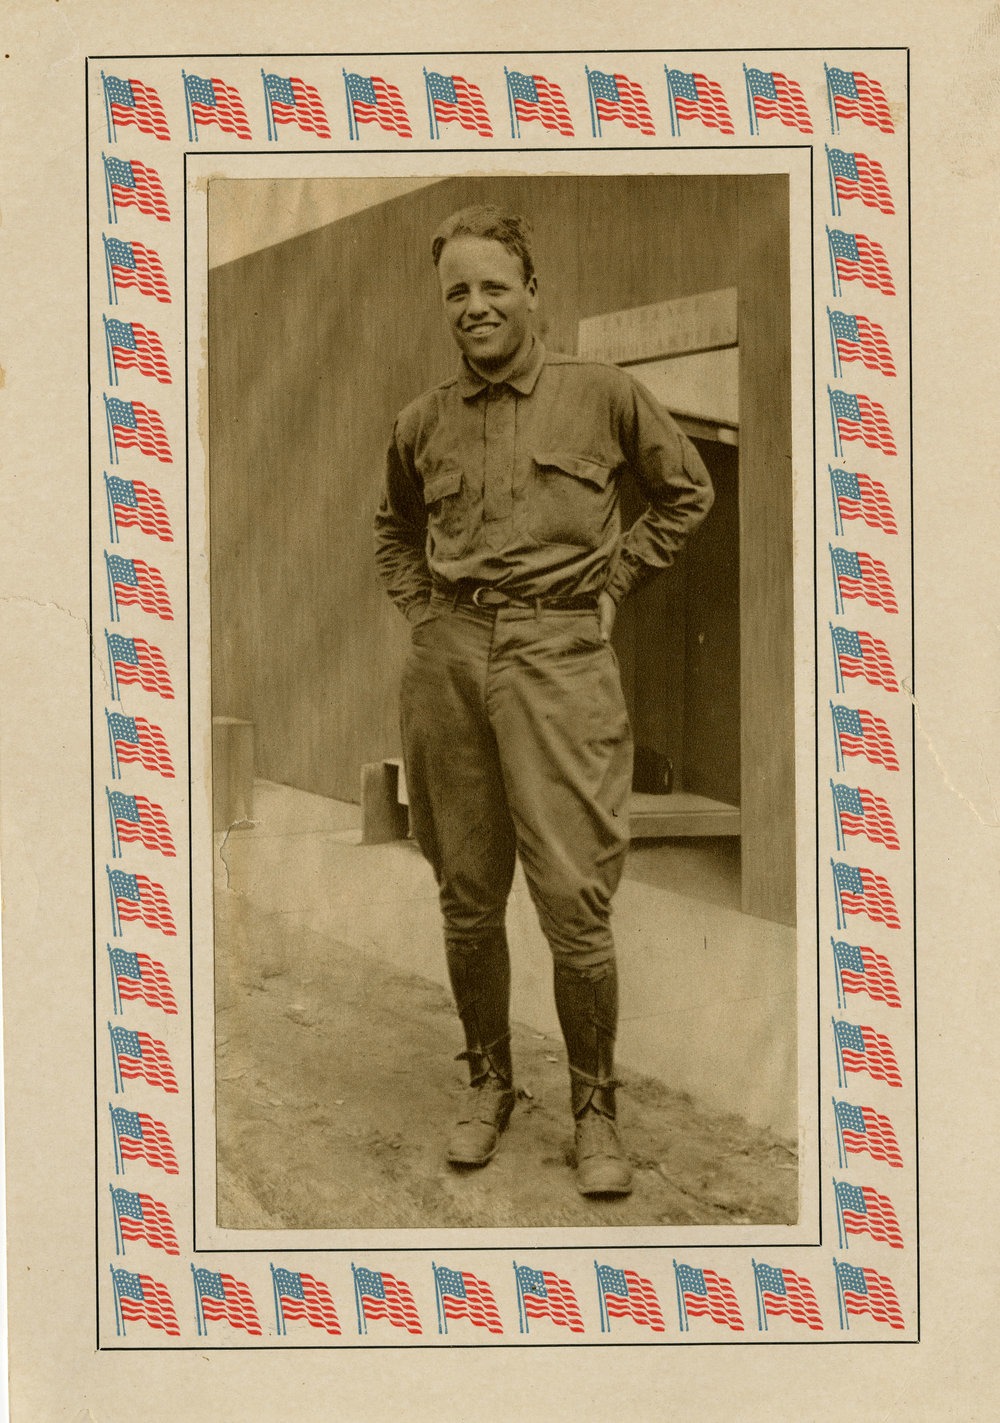 Sepia Quentin Roosevelt Military Pose